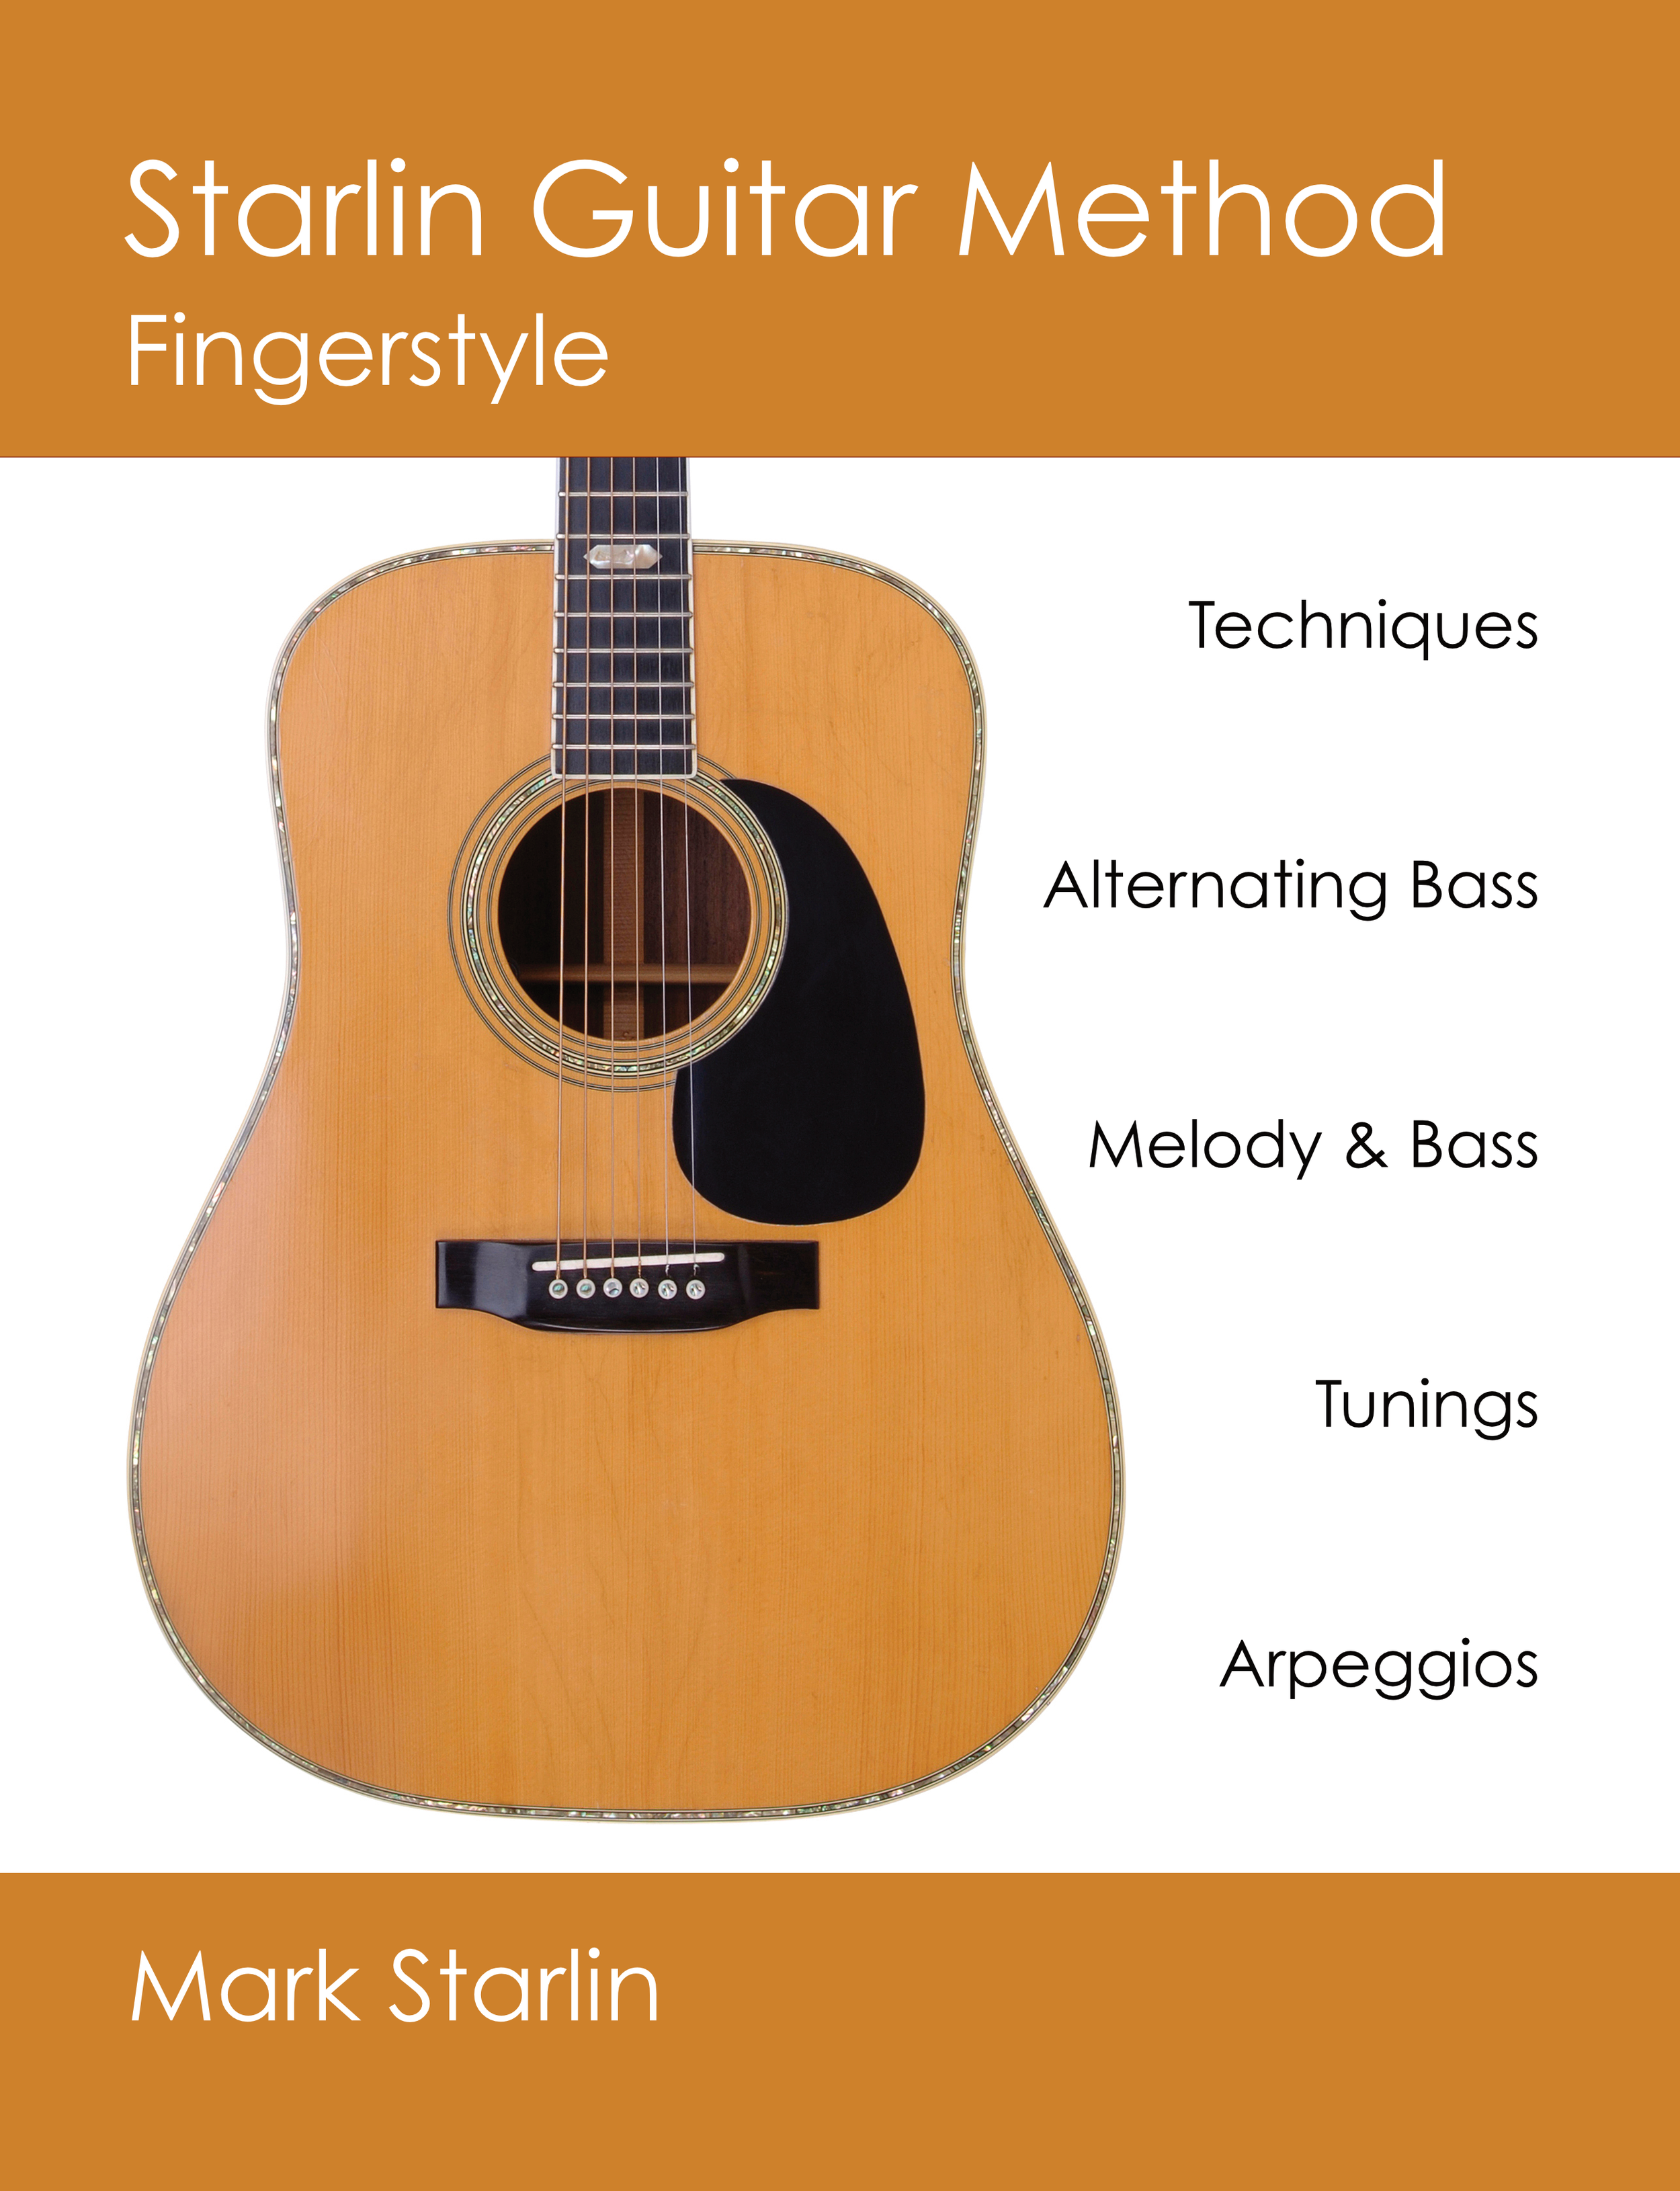 SGM Fingerstyle Front Cover CMYK.png